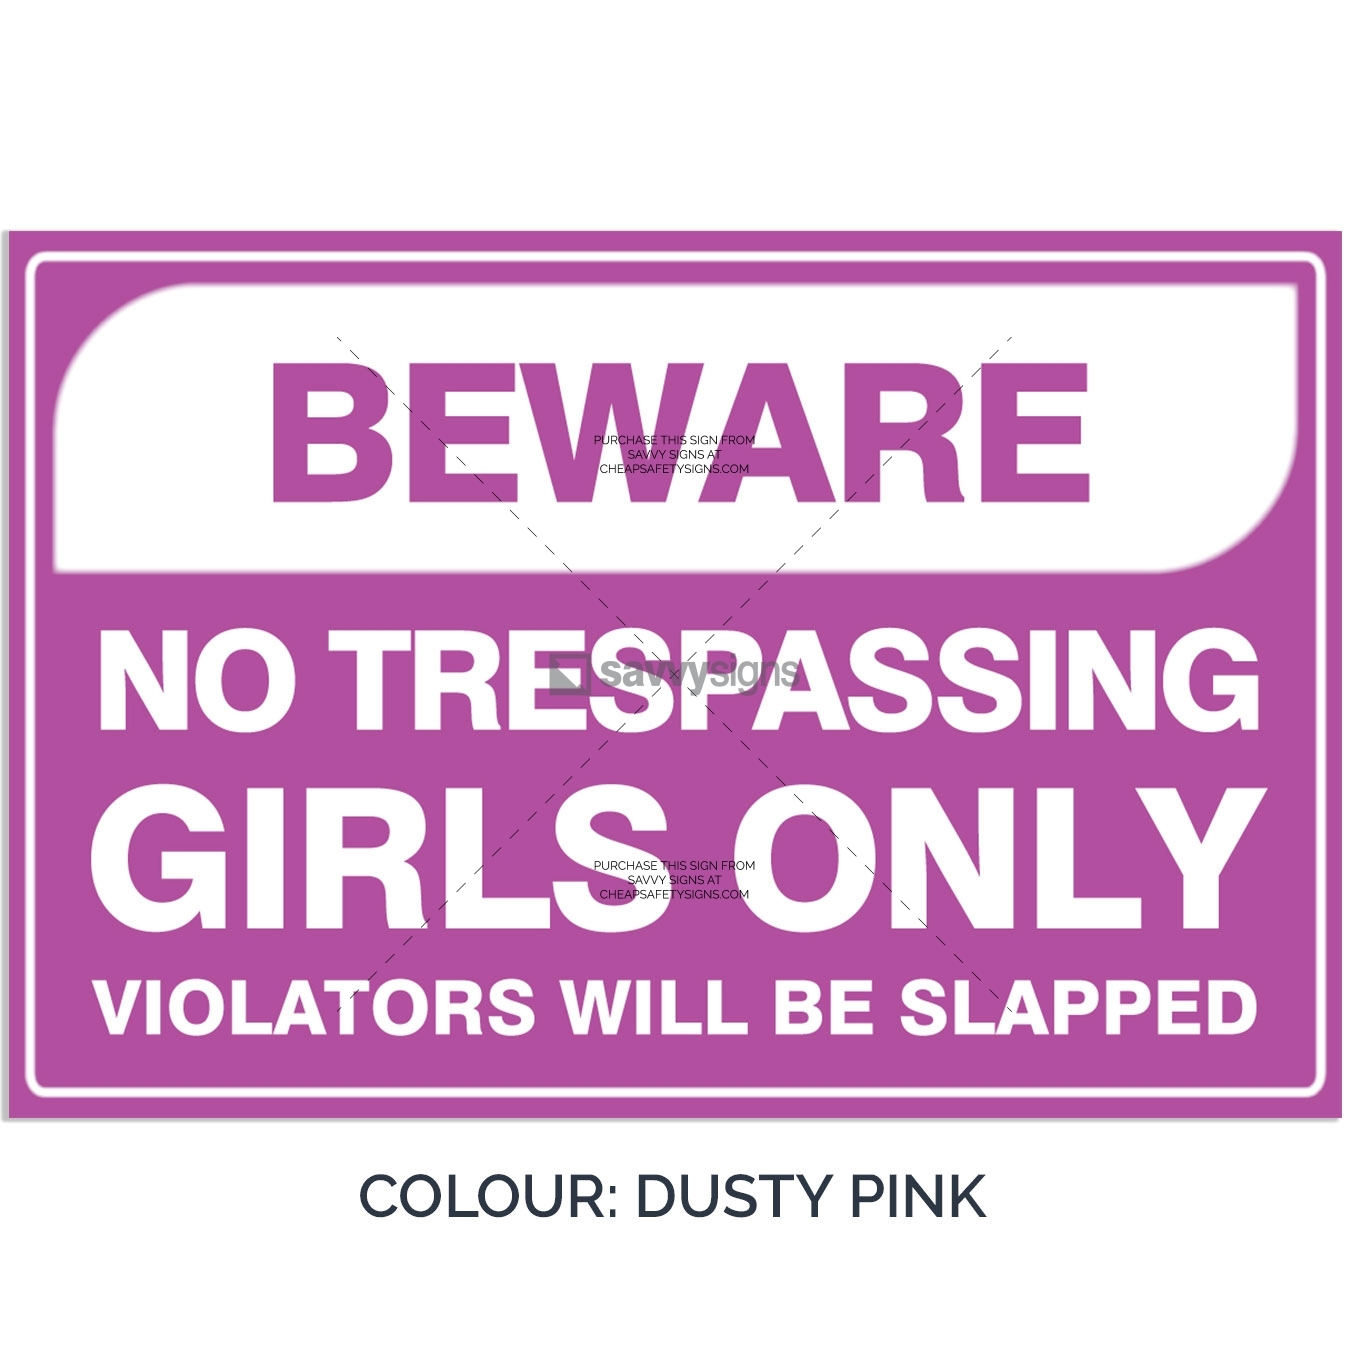 SSFUN3050-Girls-Only-11-Dusty-Pink-Bedroom-Door-Sign_Savvy-Signs_v1